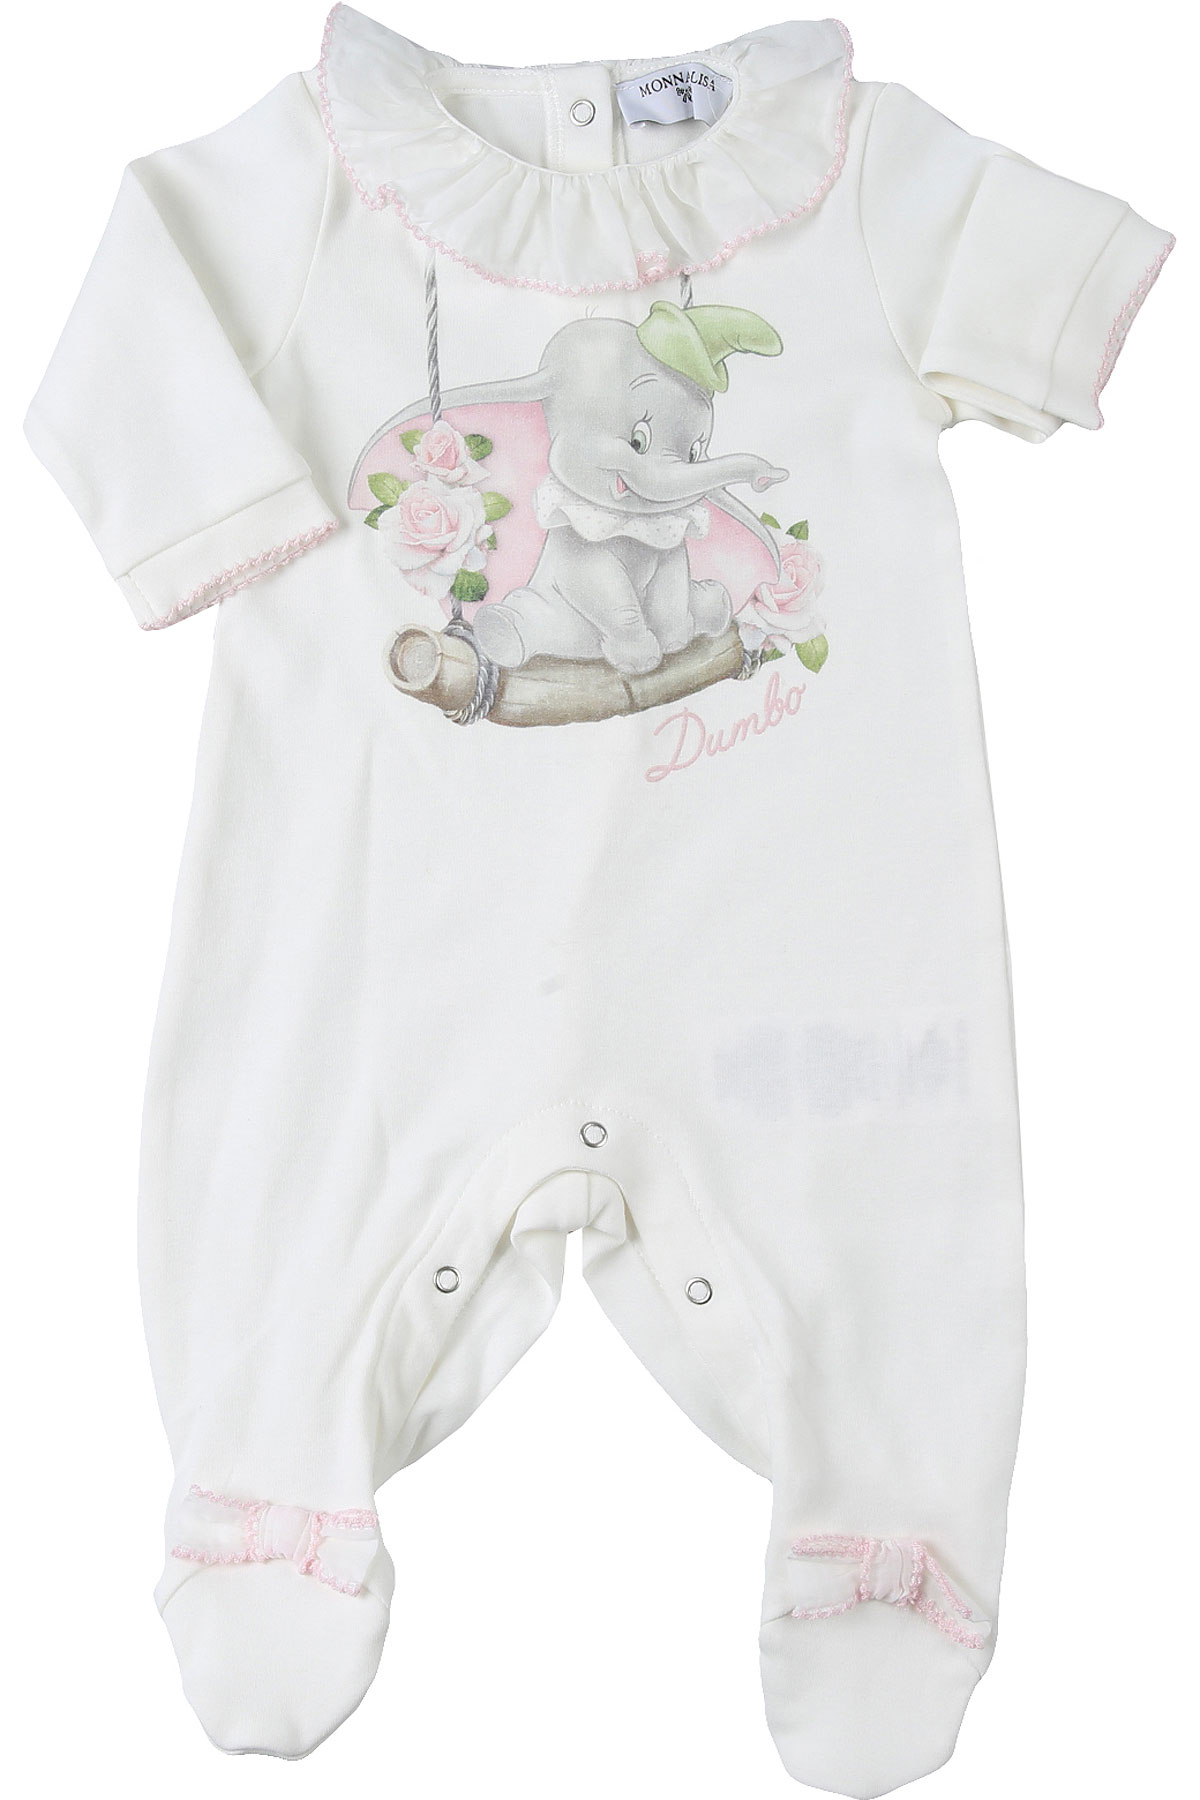 Monnalisa Baby Bodysuits & Onesies for Girls On Sale, White, Cotton, 2019, 1M 3M 6M